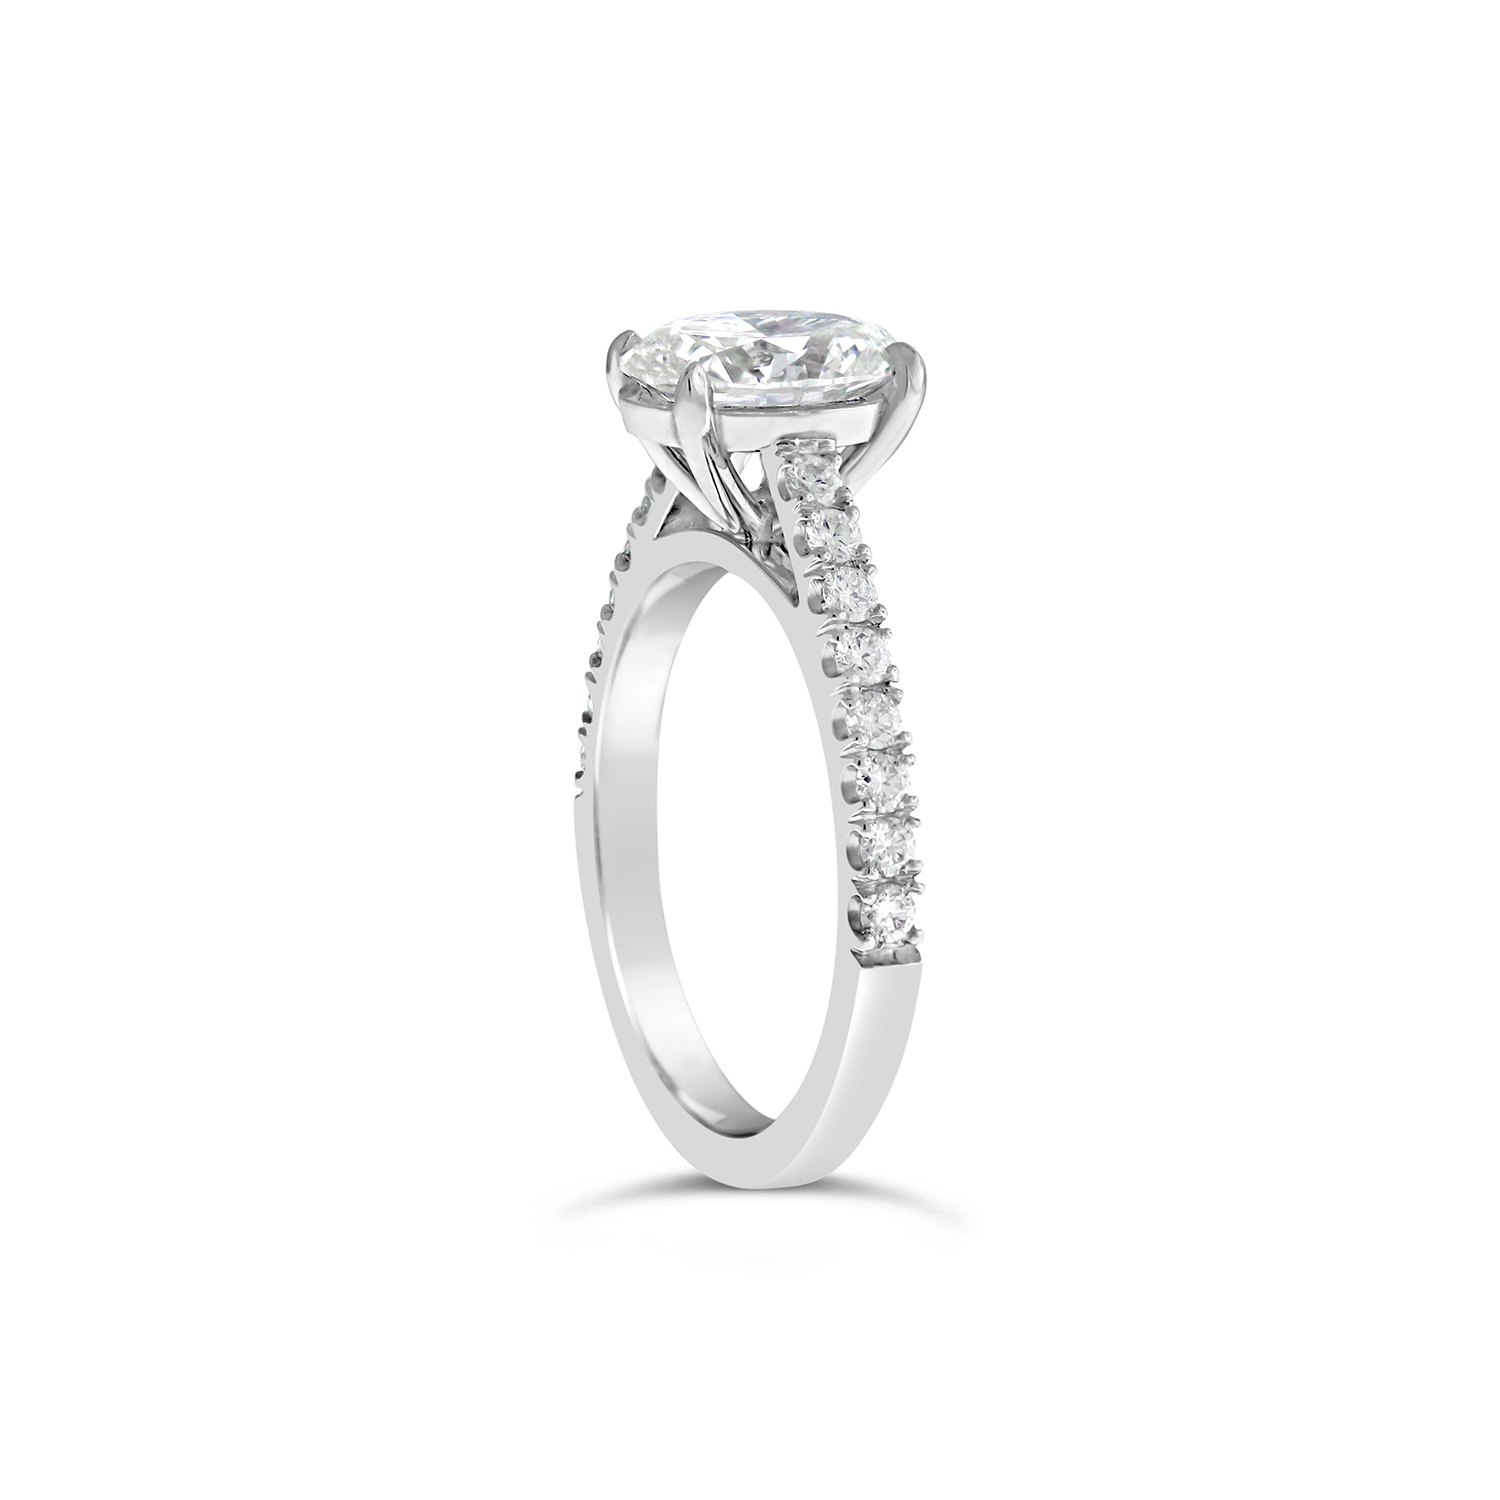 1 G2303_C_Oval Cut Engagement Ring